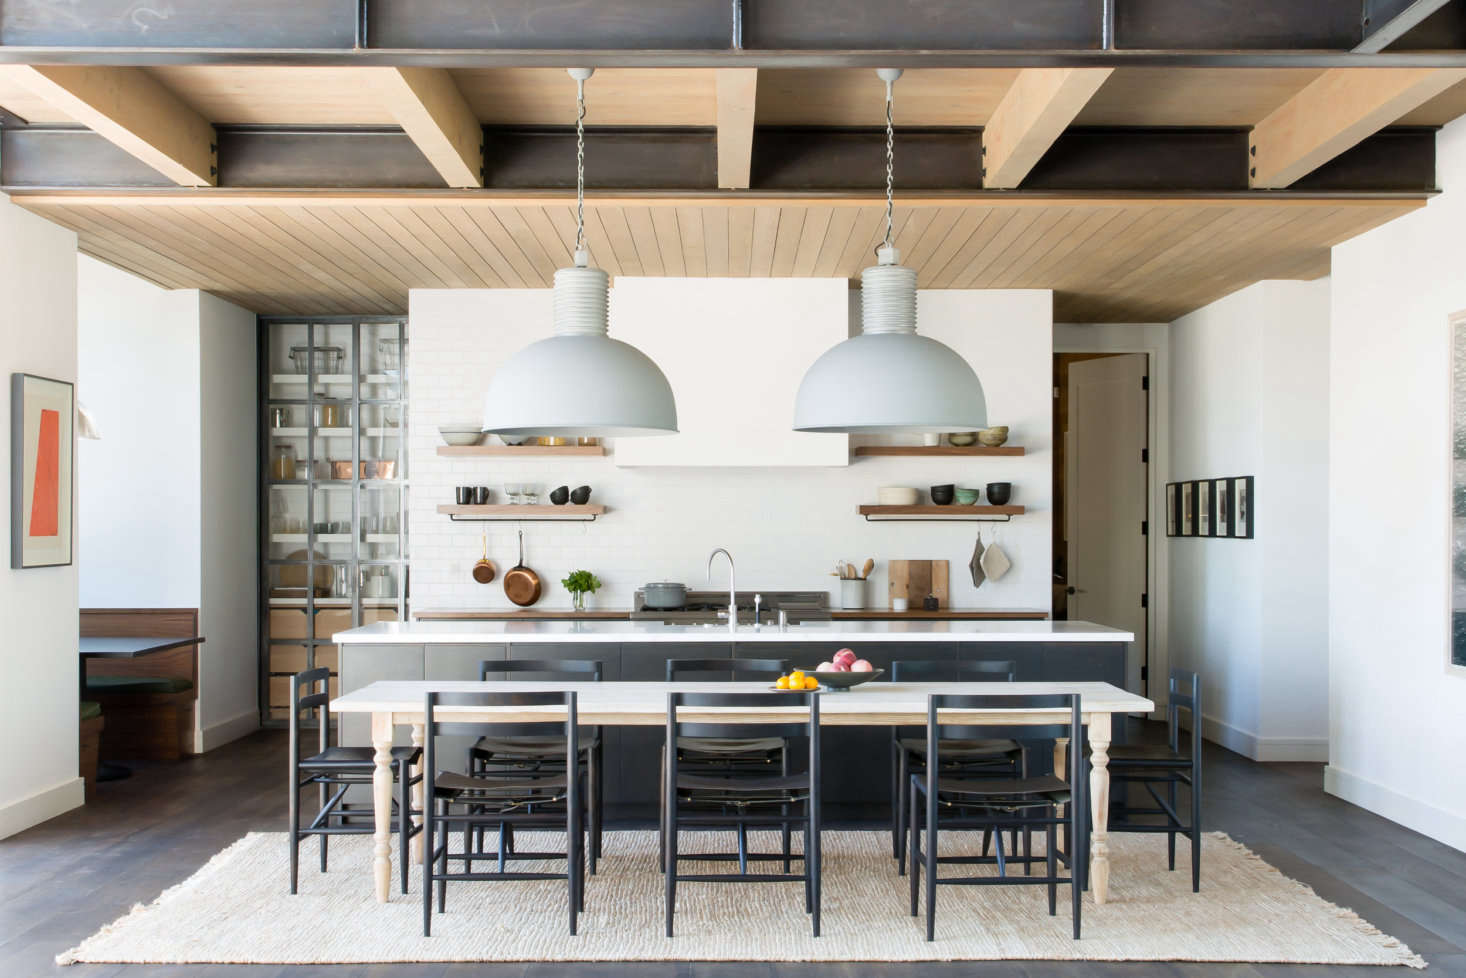 In a Tahoe kitchen by ABD Studio, a pair of oversized industrial lights hangs over the dining table.